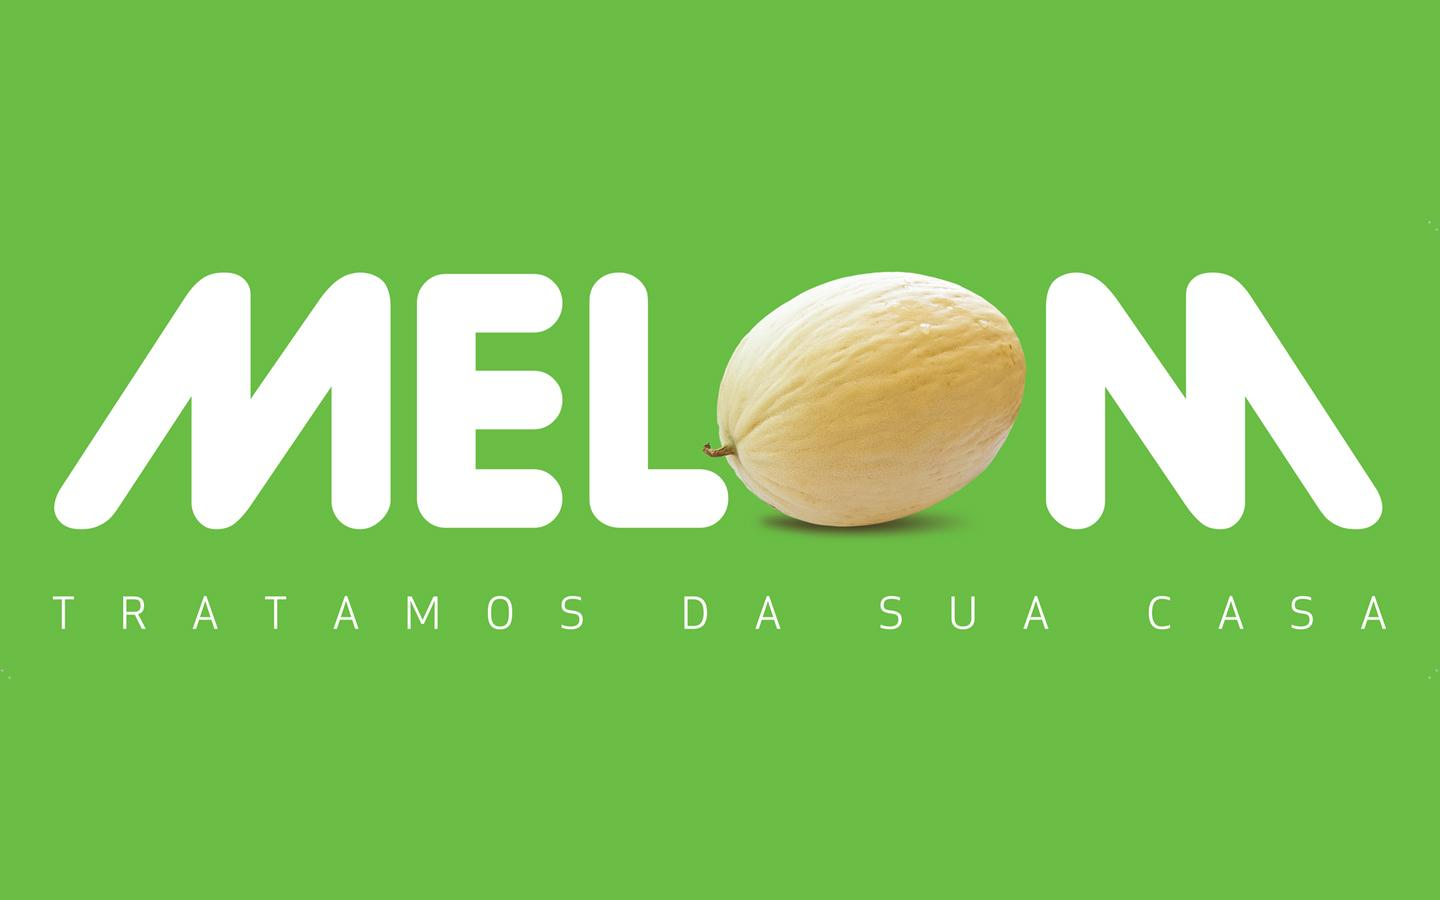 melom_work_1_1440x900